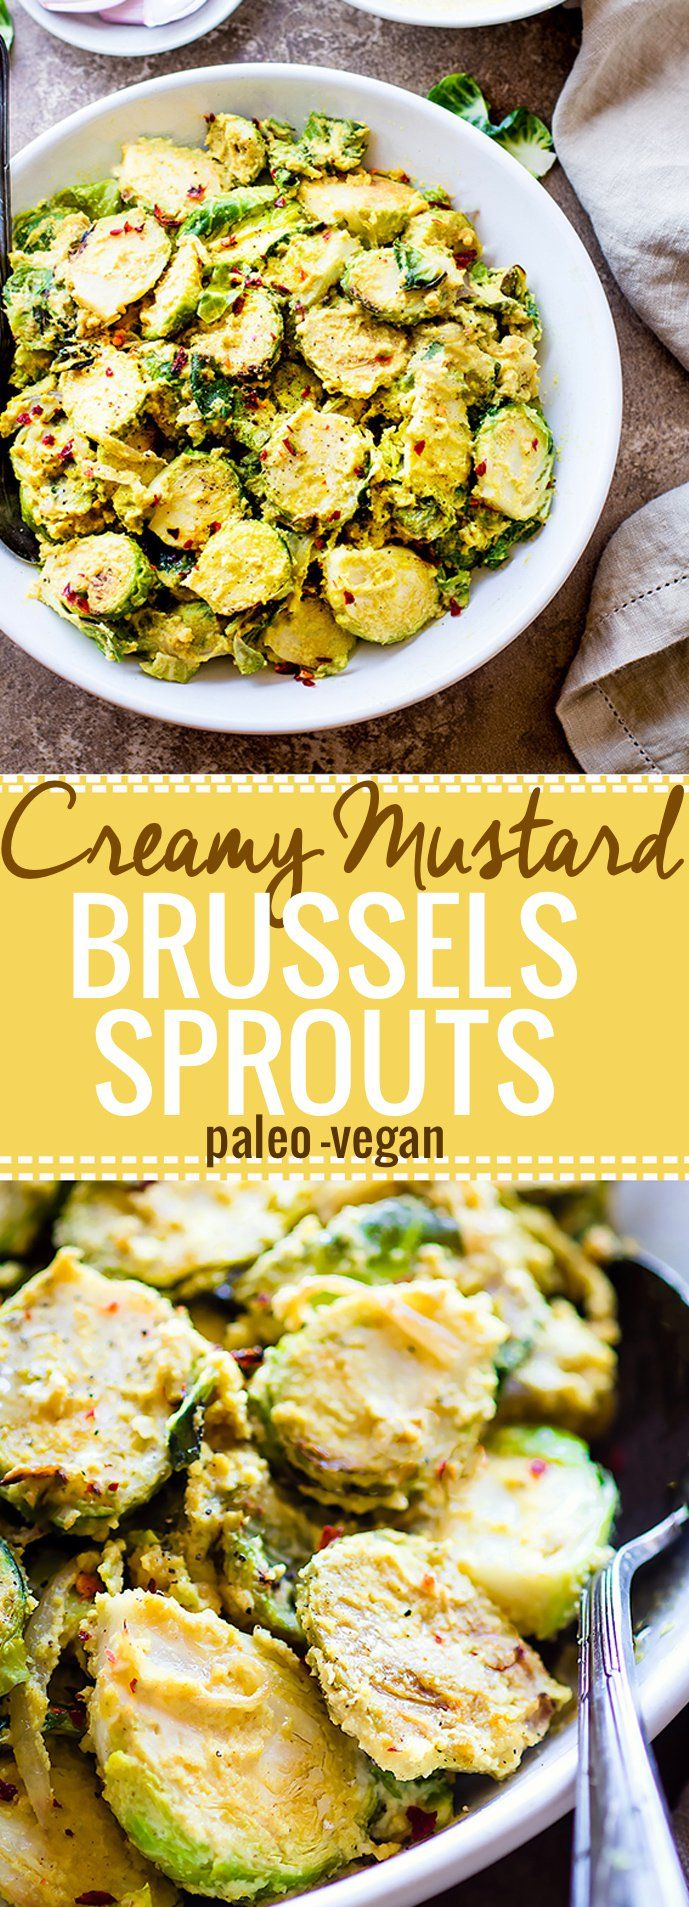 Pan Fried Creamy Mustard Brussels Sprouts Salad! A paleo Brussel Sprouts superfood salad dish tossed in a vegan creamy mustard sauce. Quick to make, packed with fiber, healthy fats, and nourishment! A healthy gluten free side dish to add to your table.